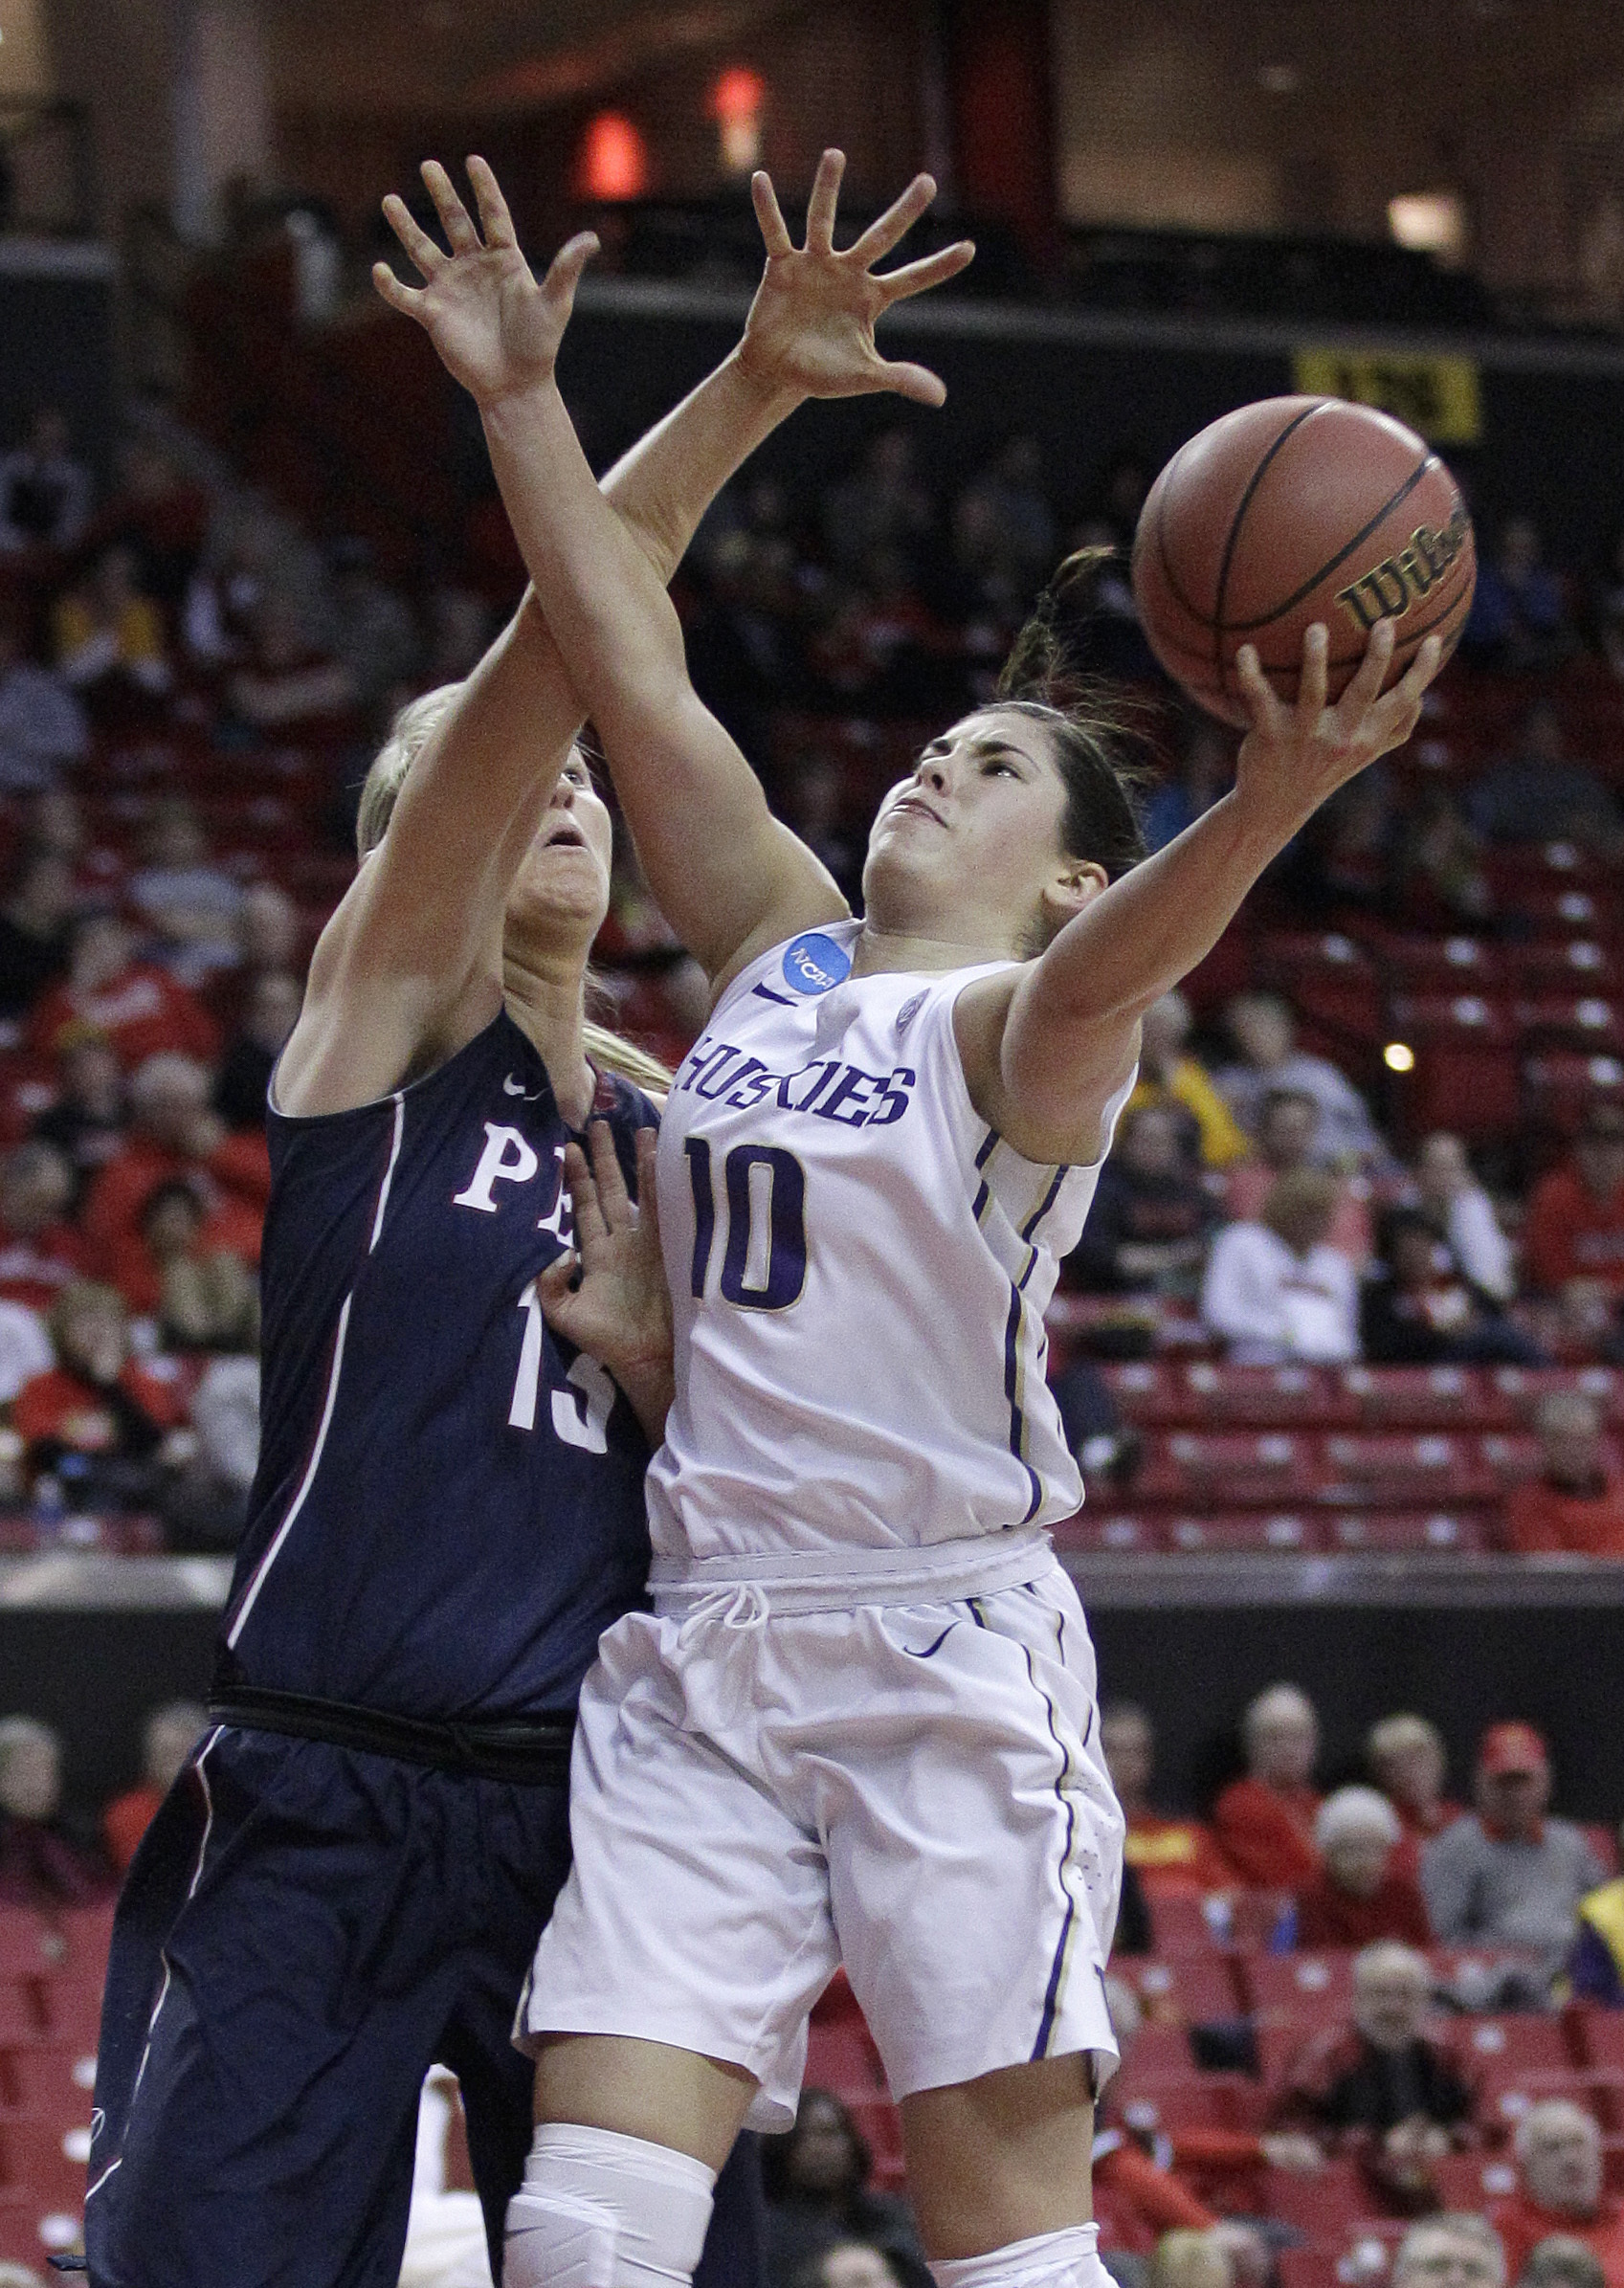 Washington guard Kelsey Plum, right, shoots against Penn center Sydney Stipanovich in the first half of an NCAA college basketball game in the first round of the NCAA tournament, Saturday, March 19, 2016, in College Park, Md. (AP Photo/Patrick Semansky)